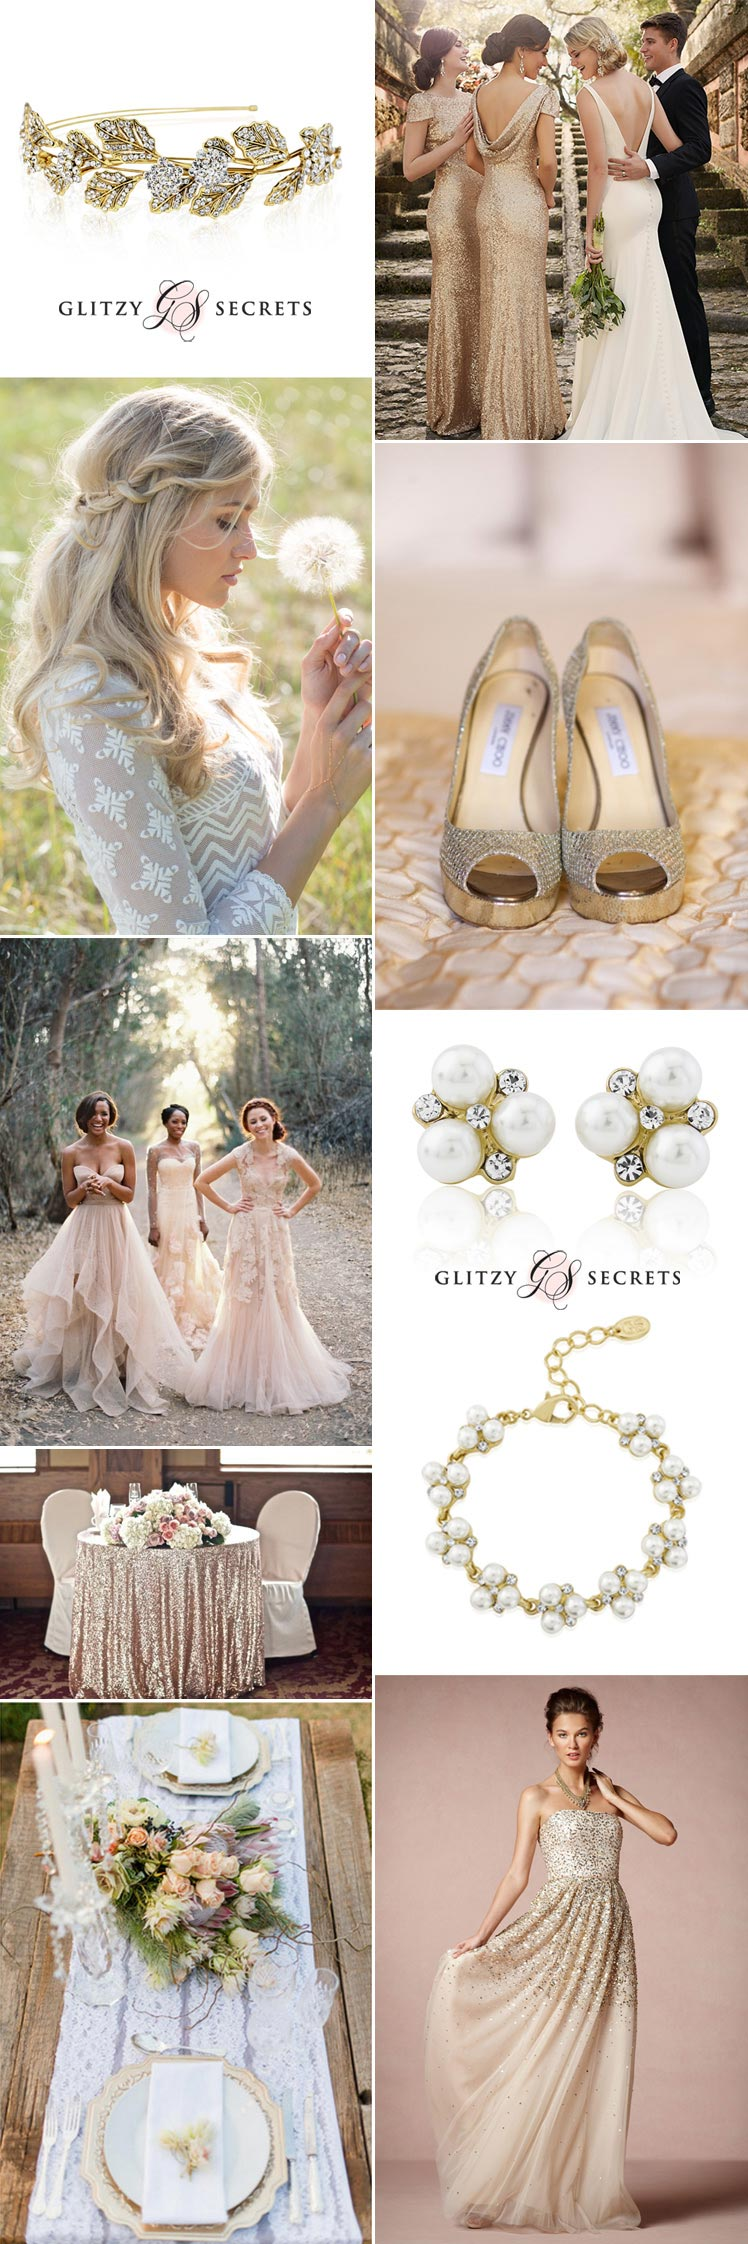 When to choose gold wedding accessories